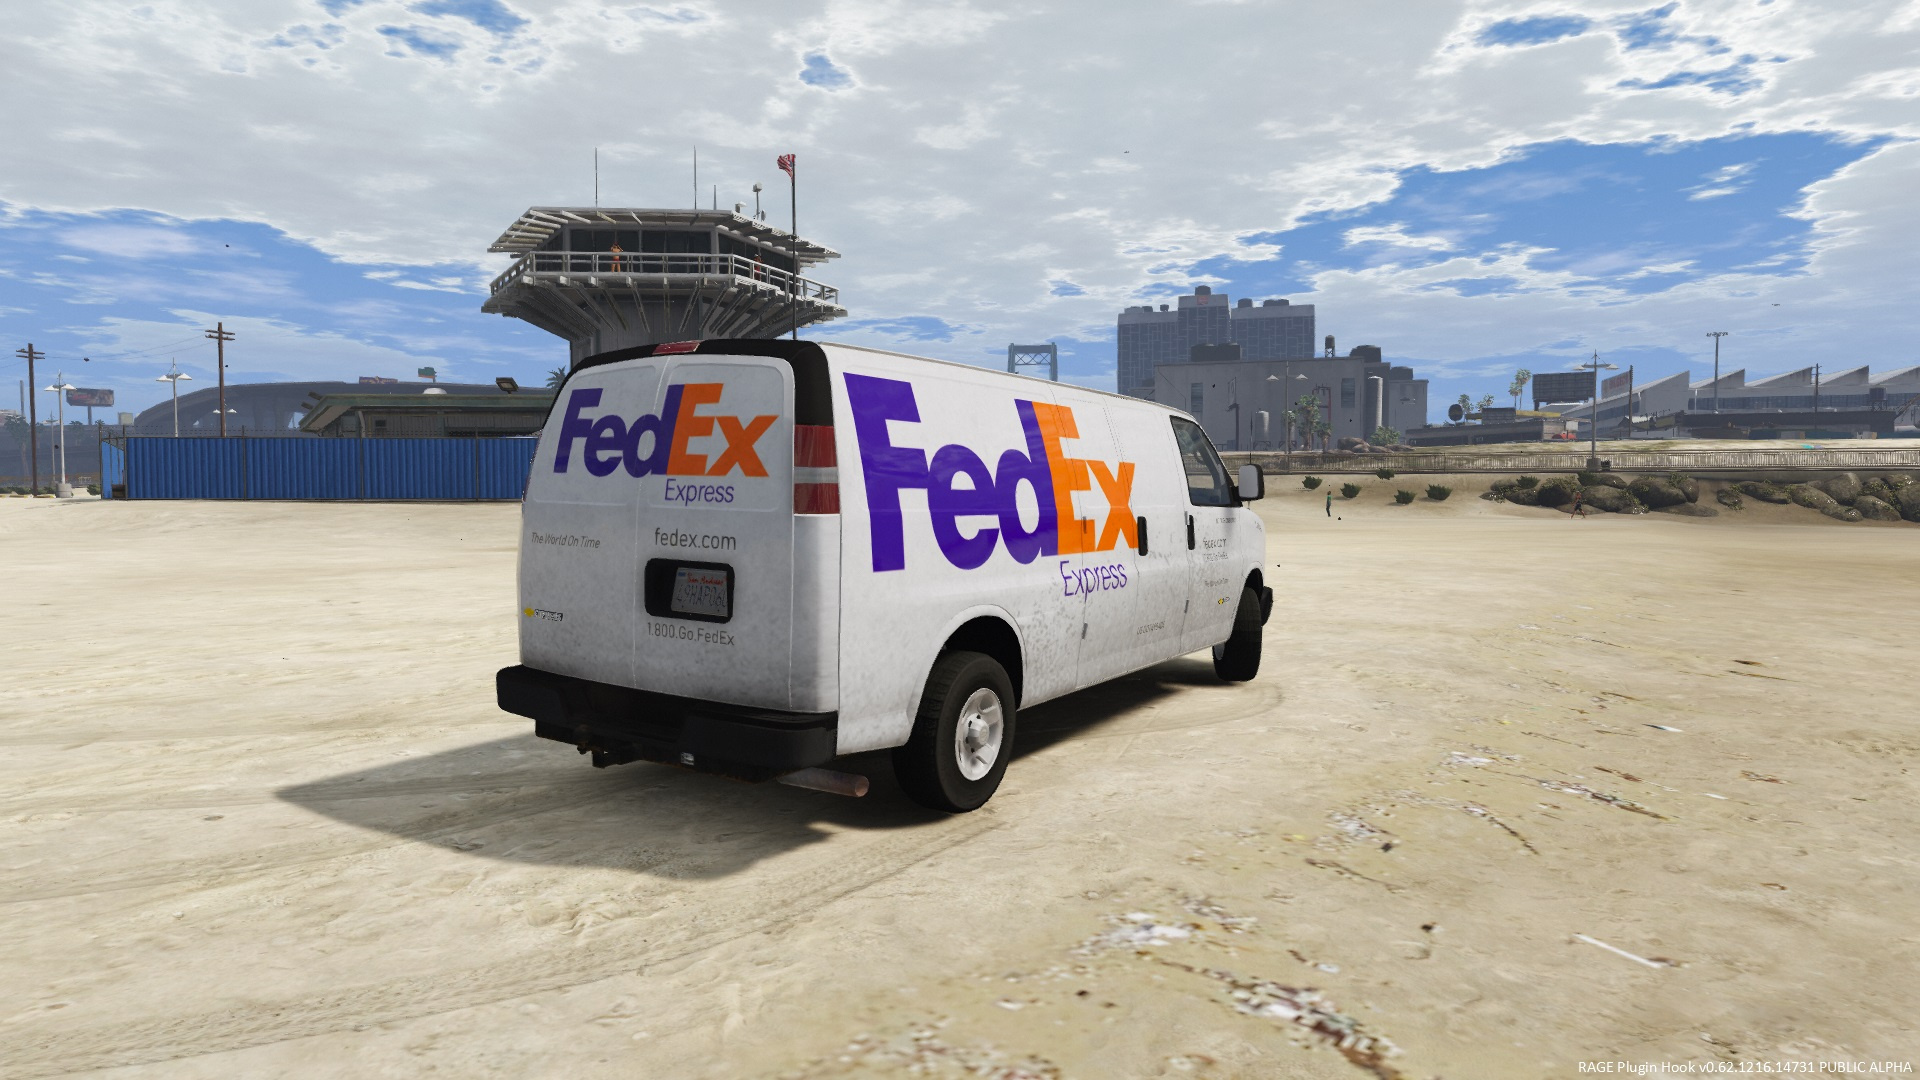 2016 Chevy Express 3500 FedEx Express/Ground/Home Delivery ...